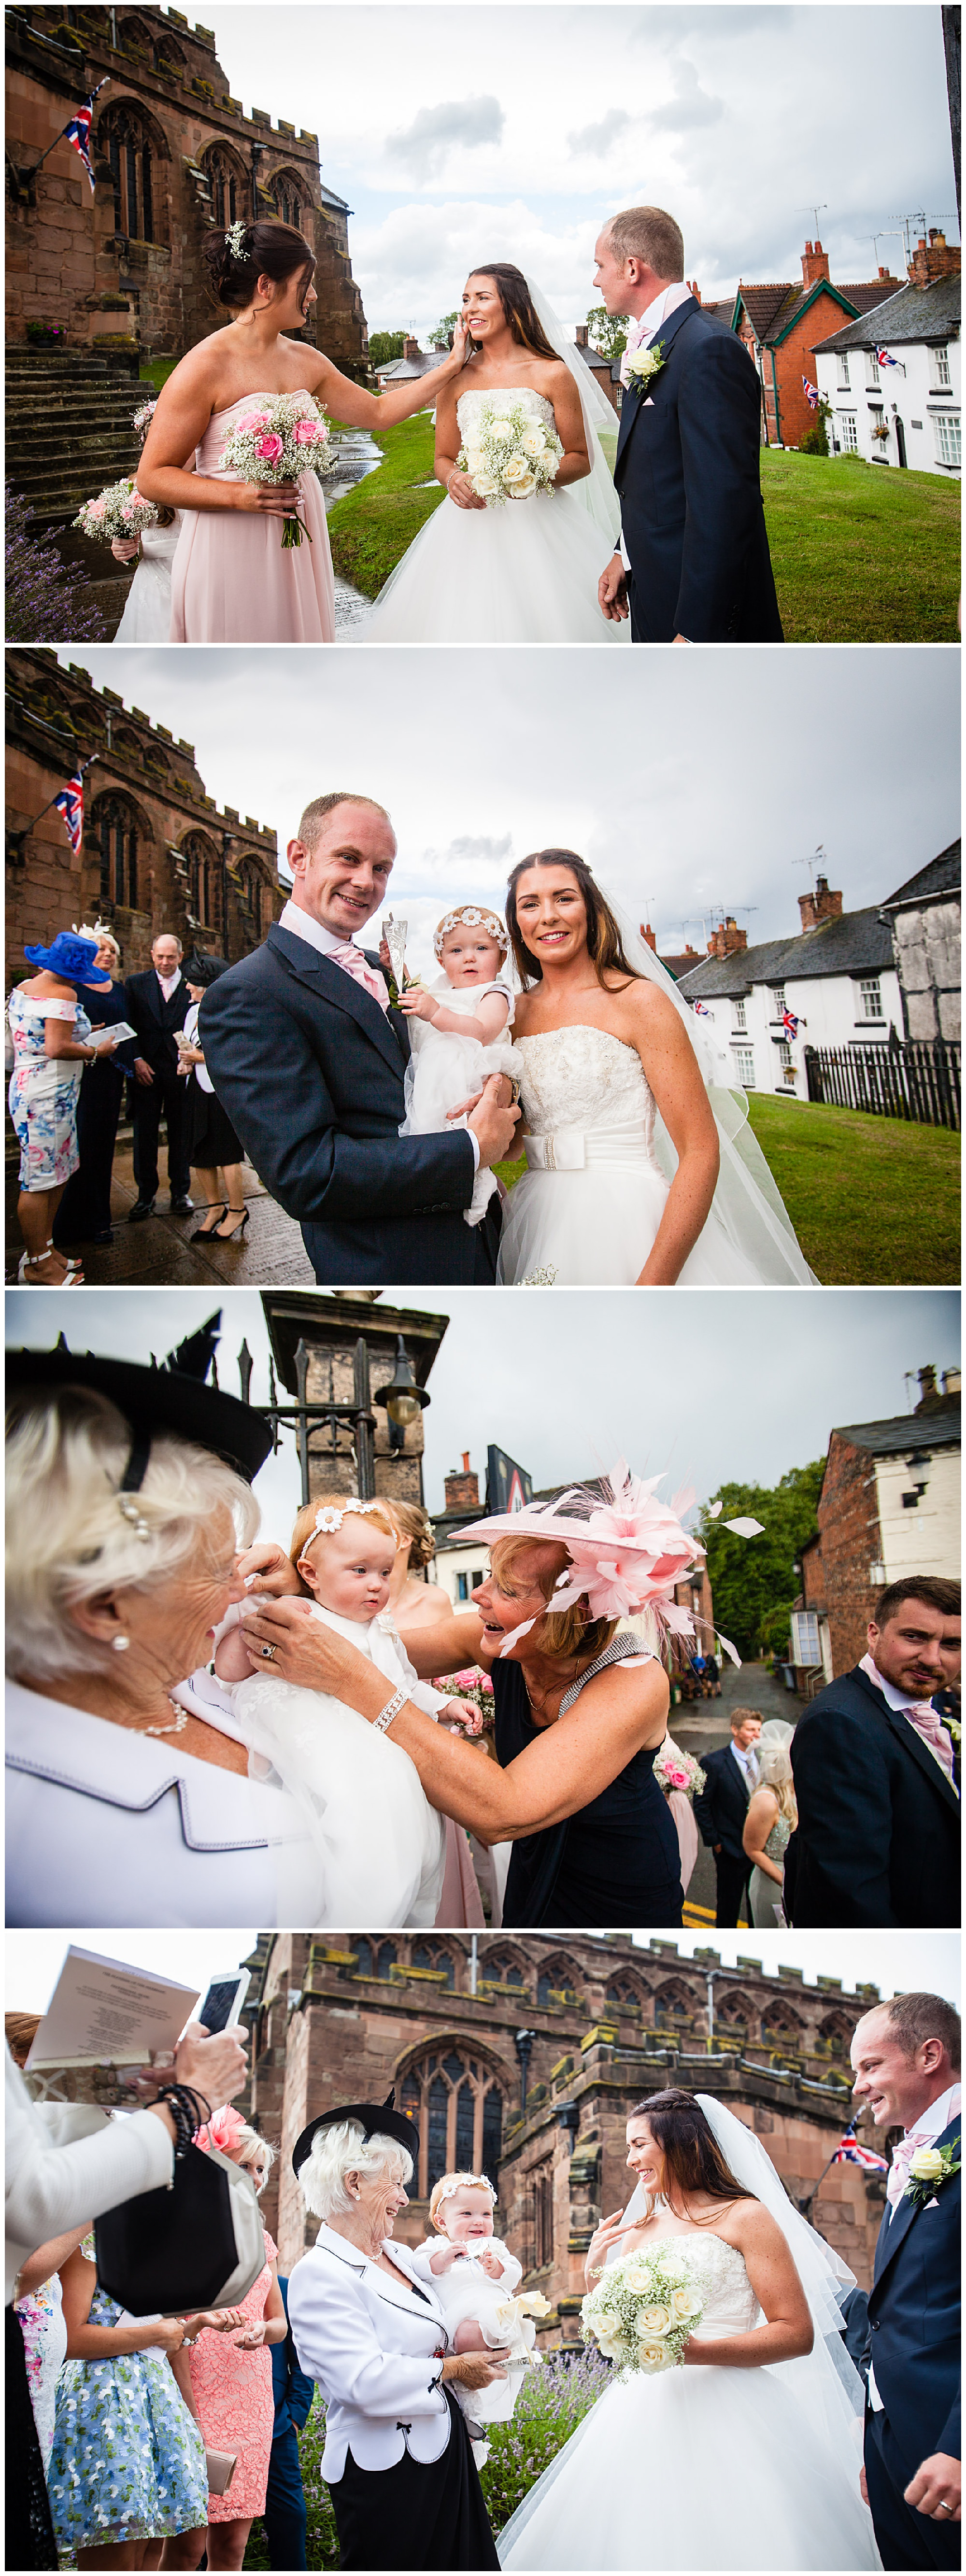 family photo with daughter and guests saying hello - St. James' Church Audlem Wedding Photography